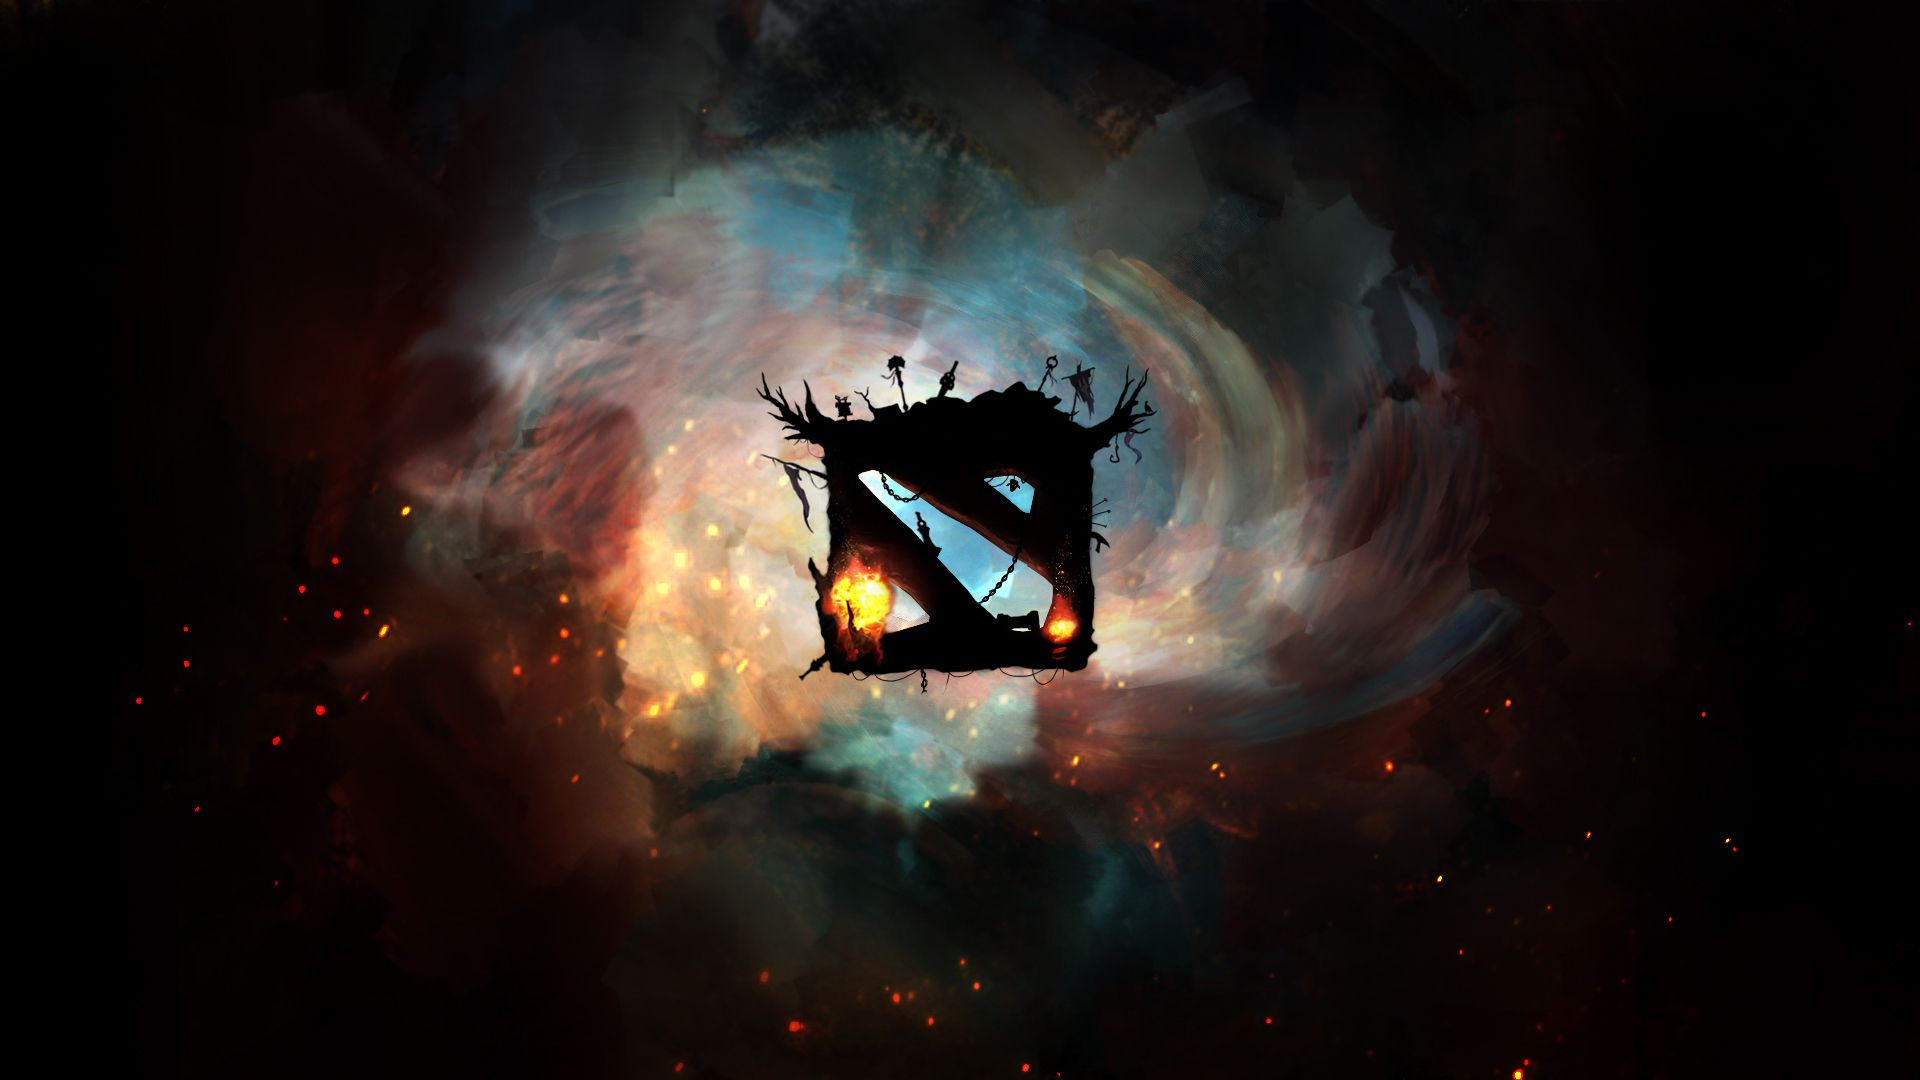 Dota 2 Logo Cool Wallpaper High Resolution Wallpaper Full Size